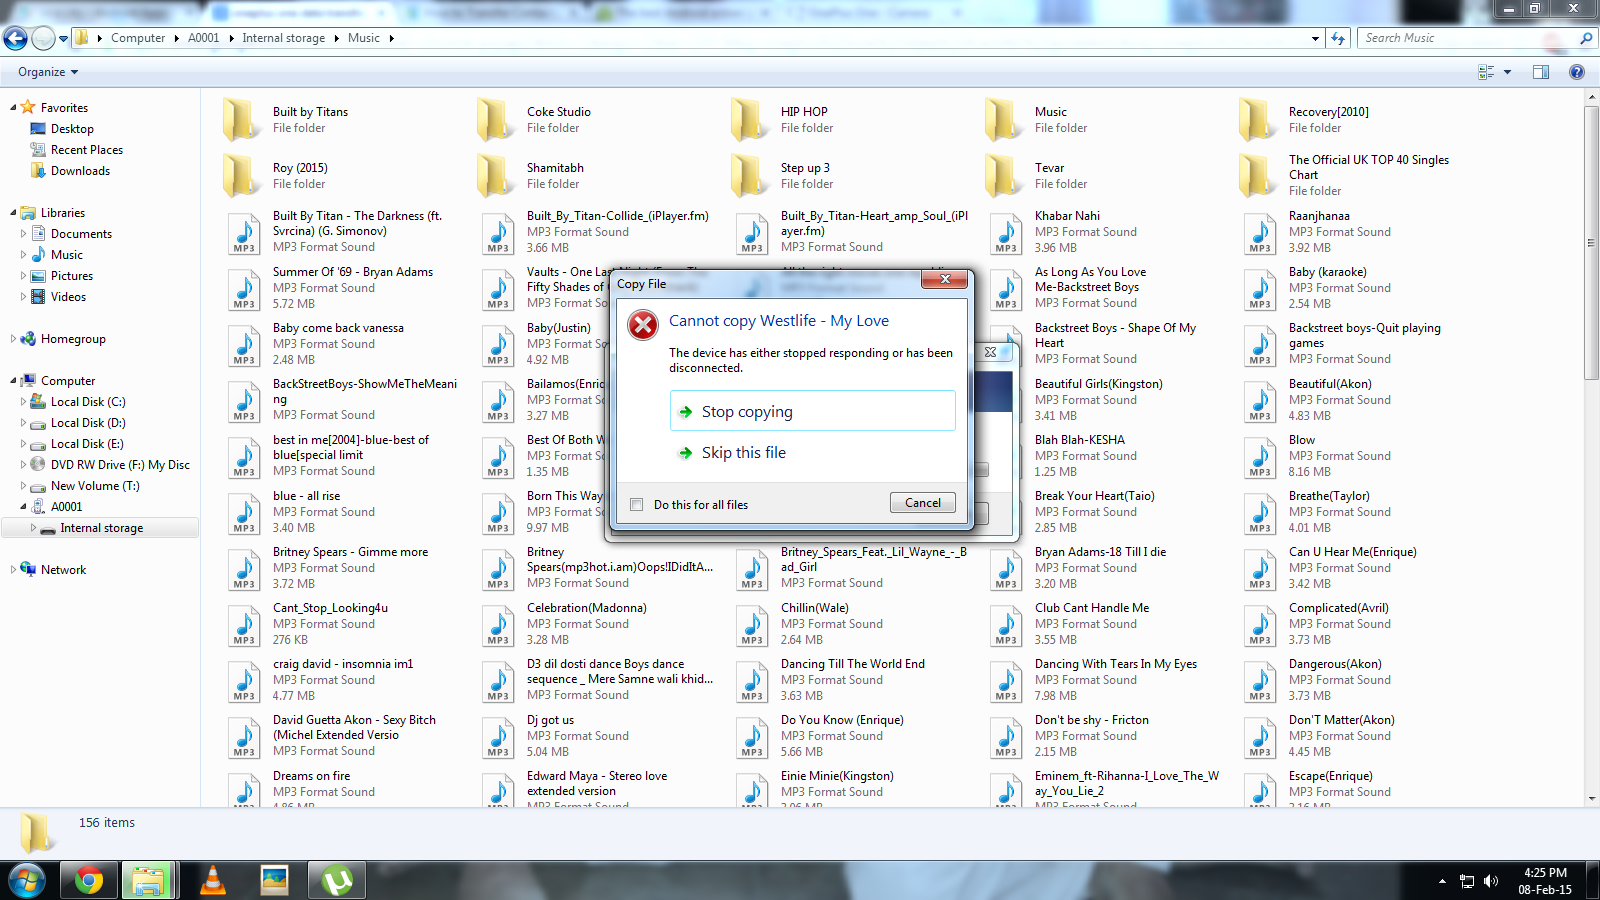 Device stops responding during File Transfer | Page 2